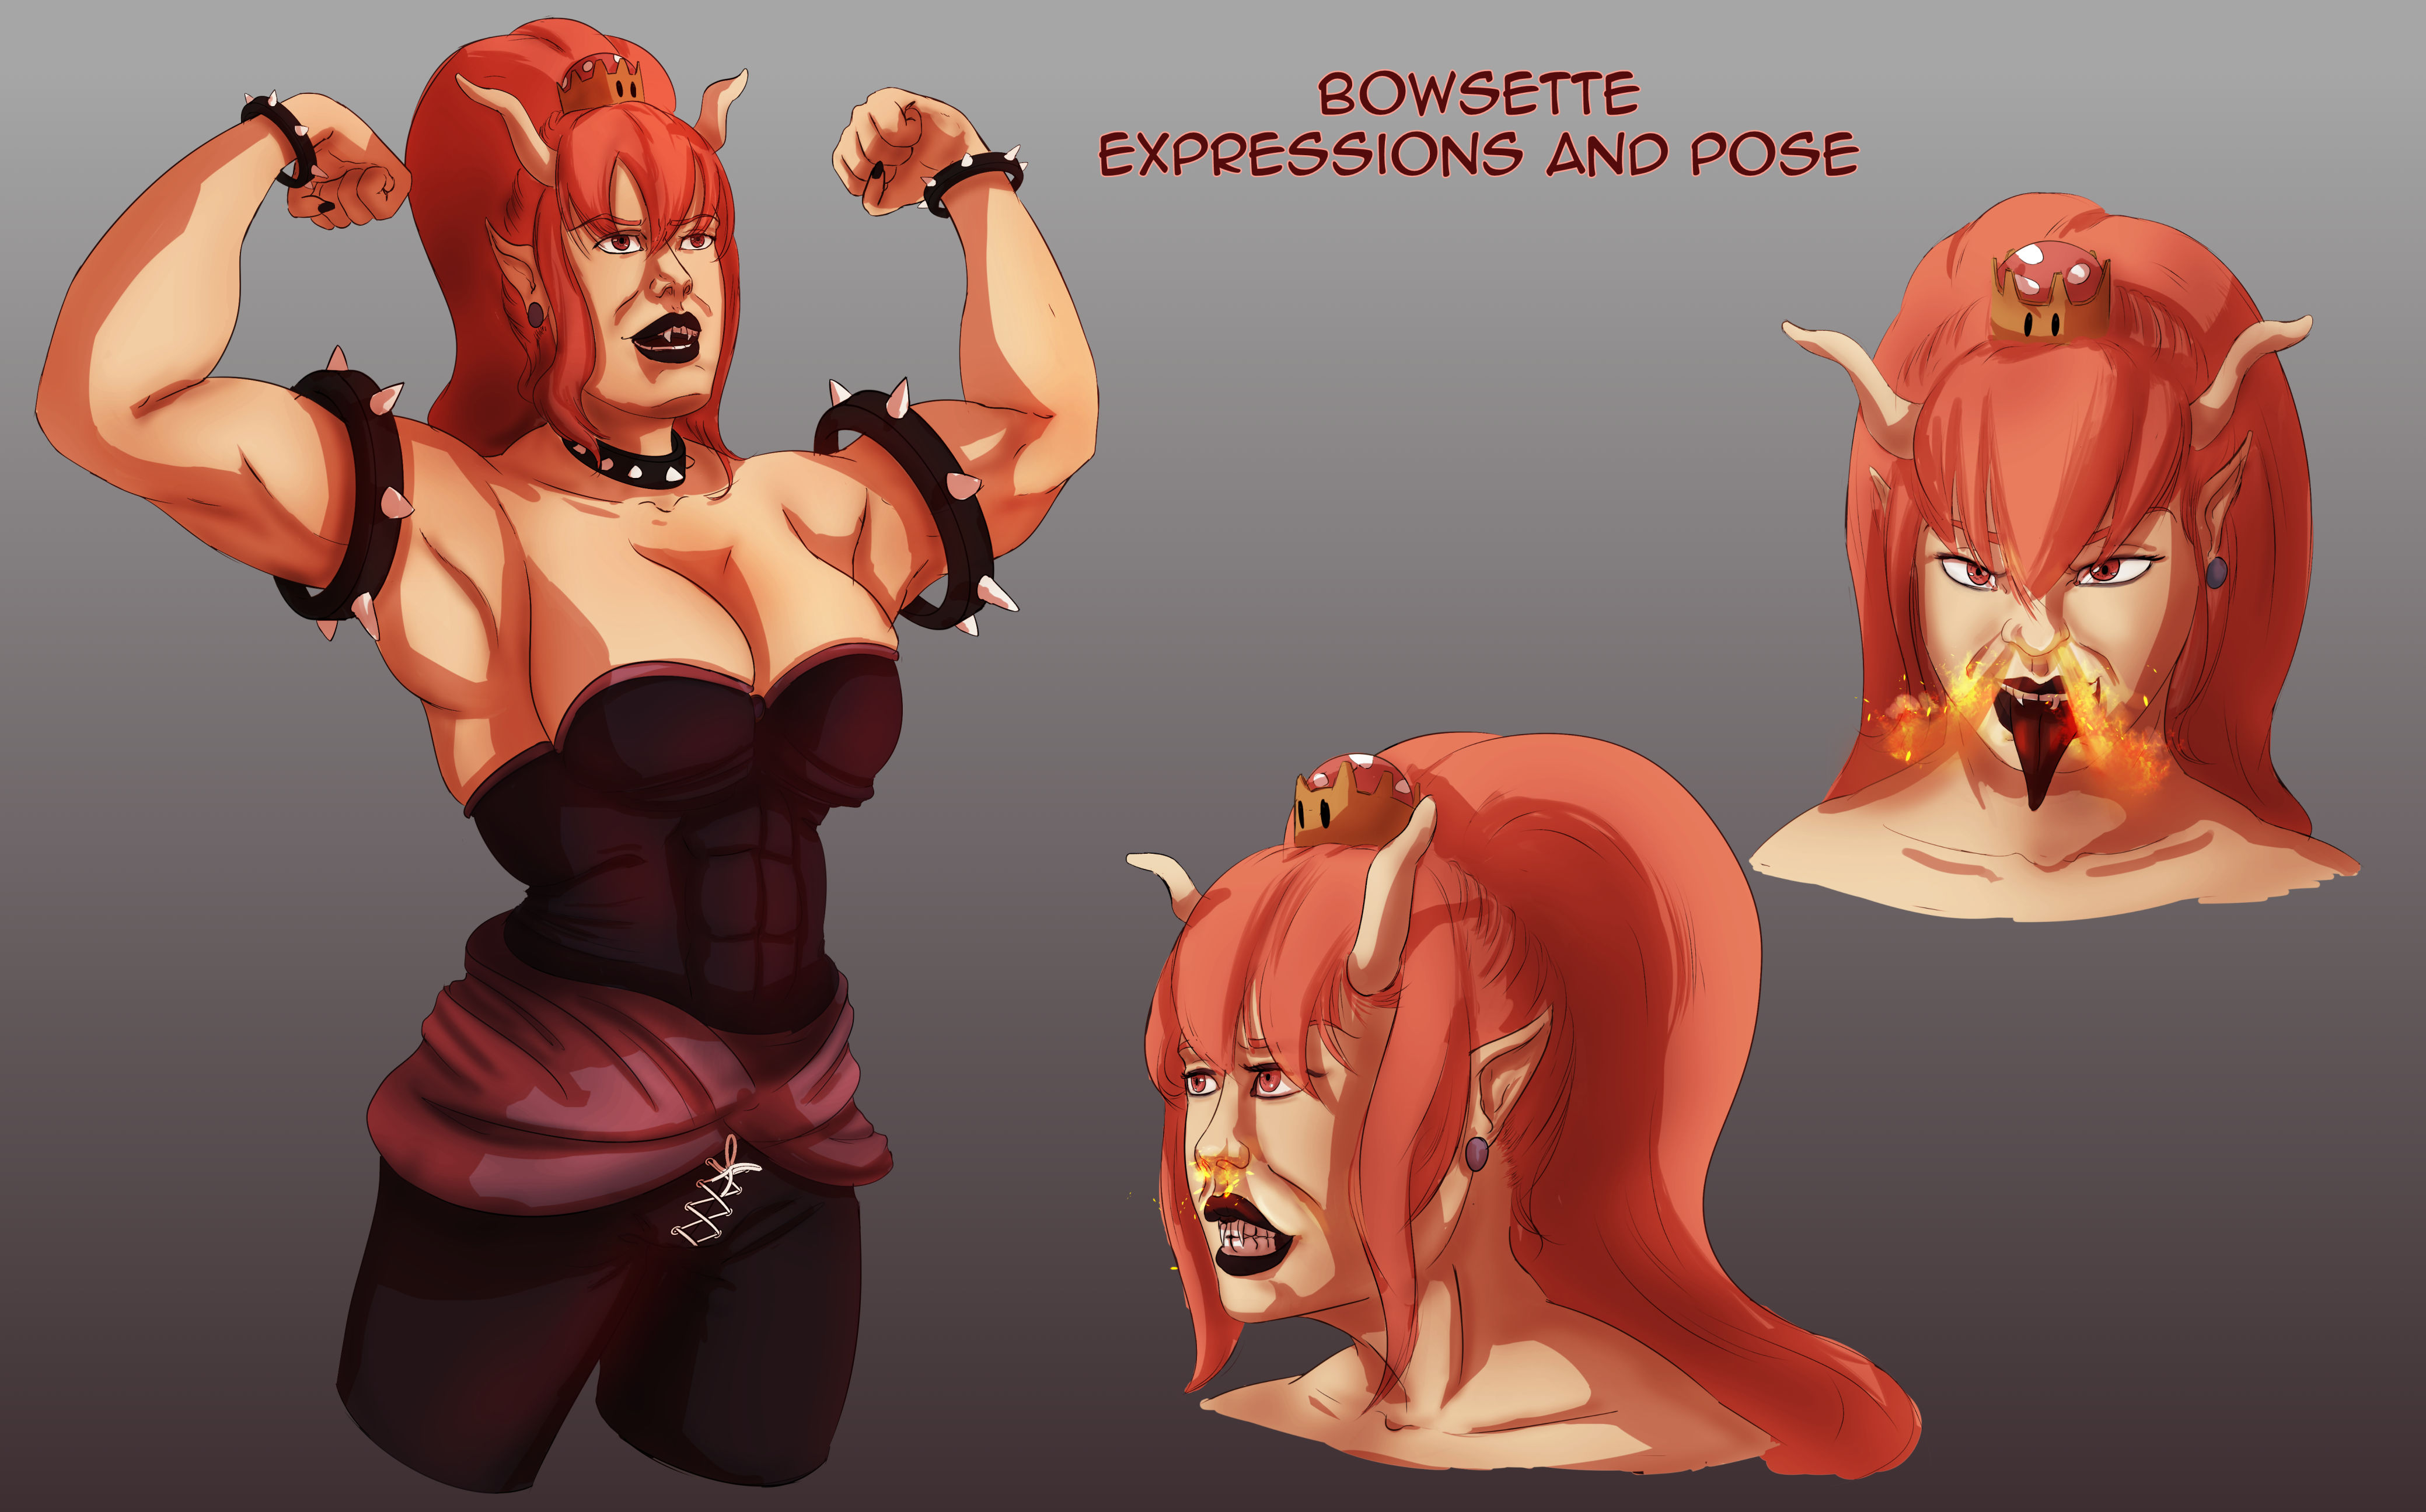 Bowsette expressions and pose